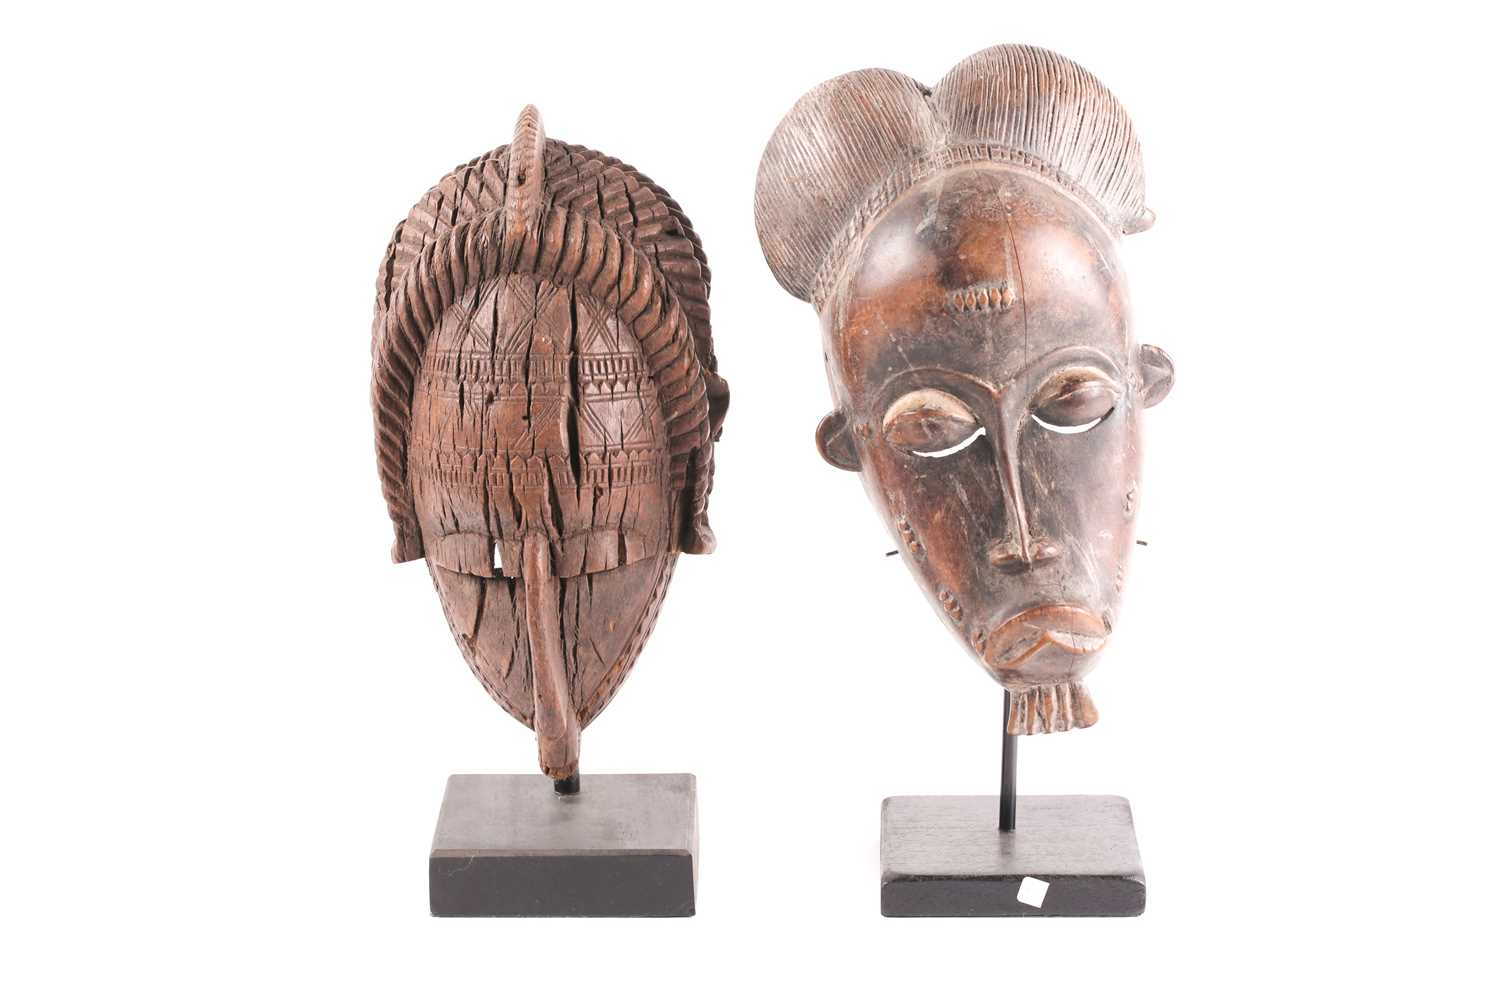 A Baule mask, Ivory Coast, with typical coiffure, relief carved scarifications to the face, the